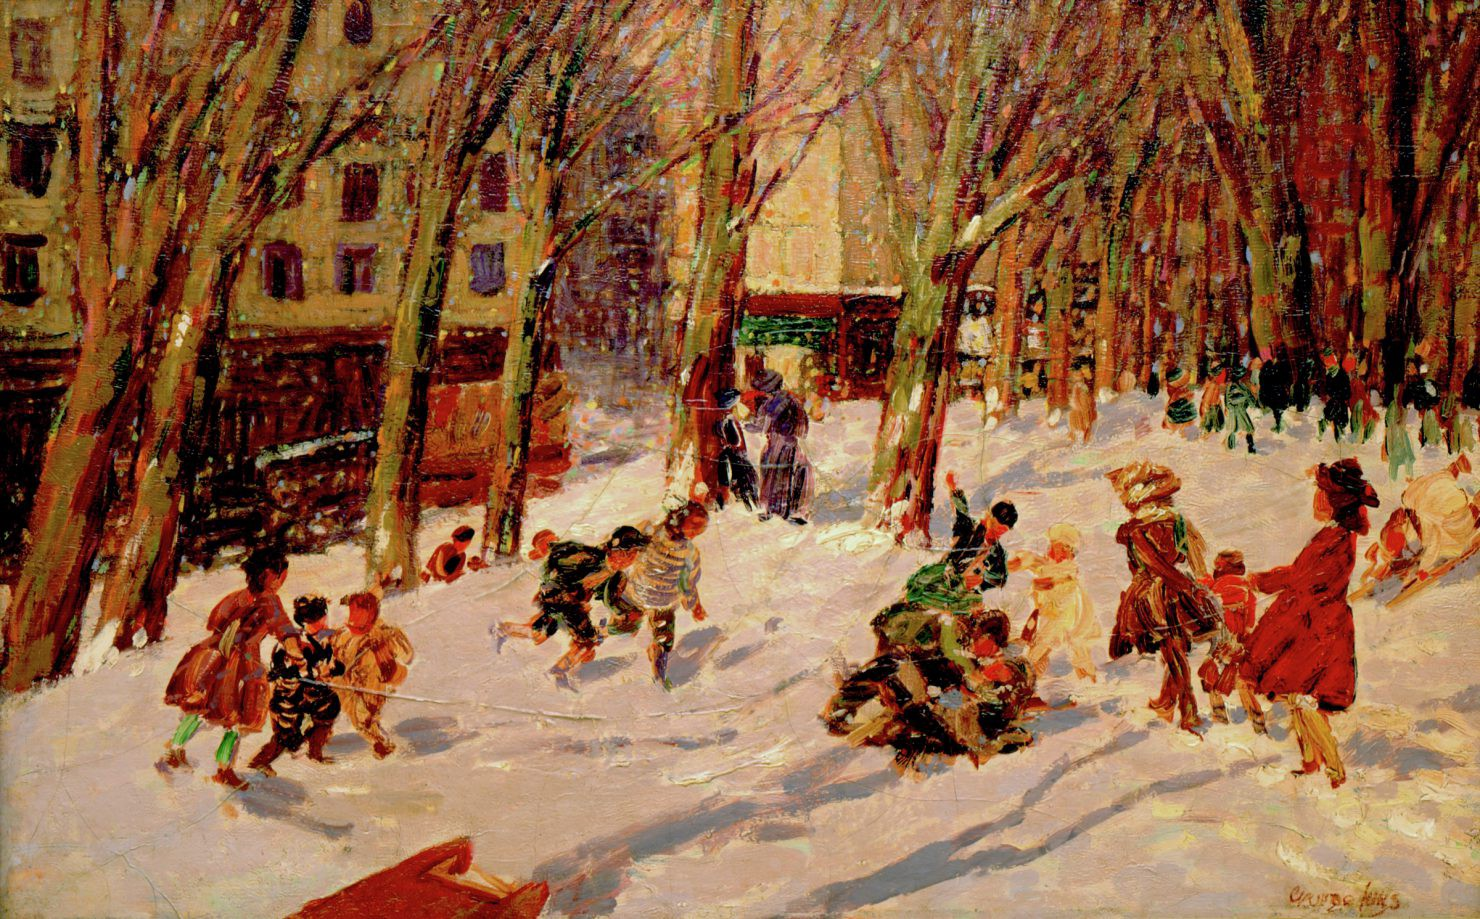 Painting of people playing in the snow in the late afternoon in an urban setting with leafless trees.